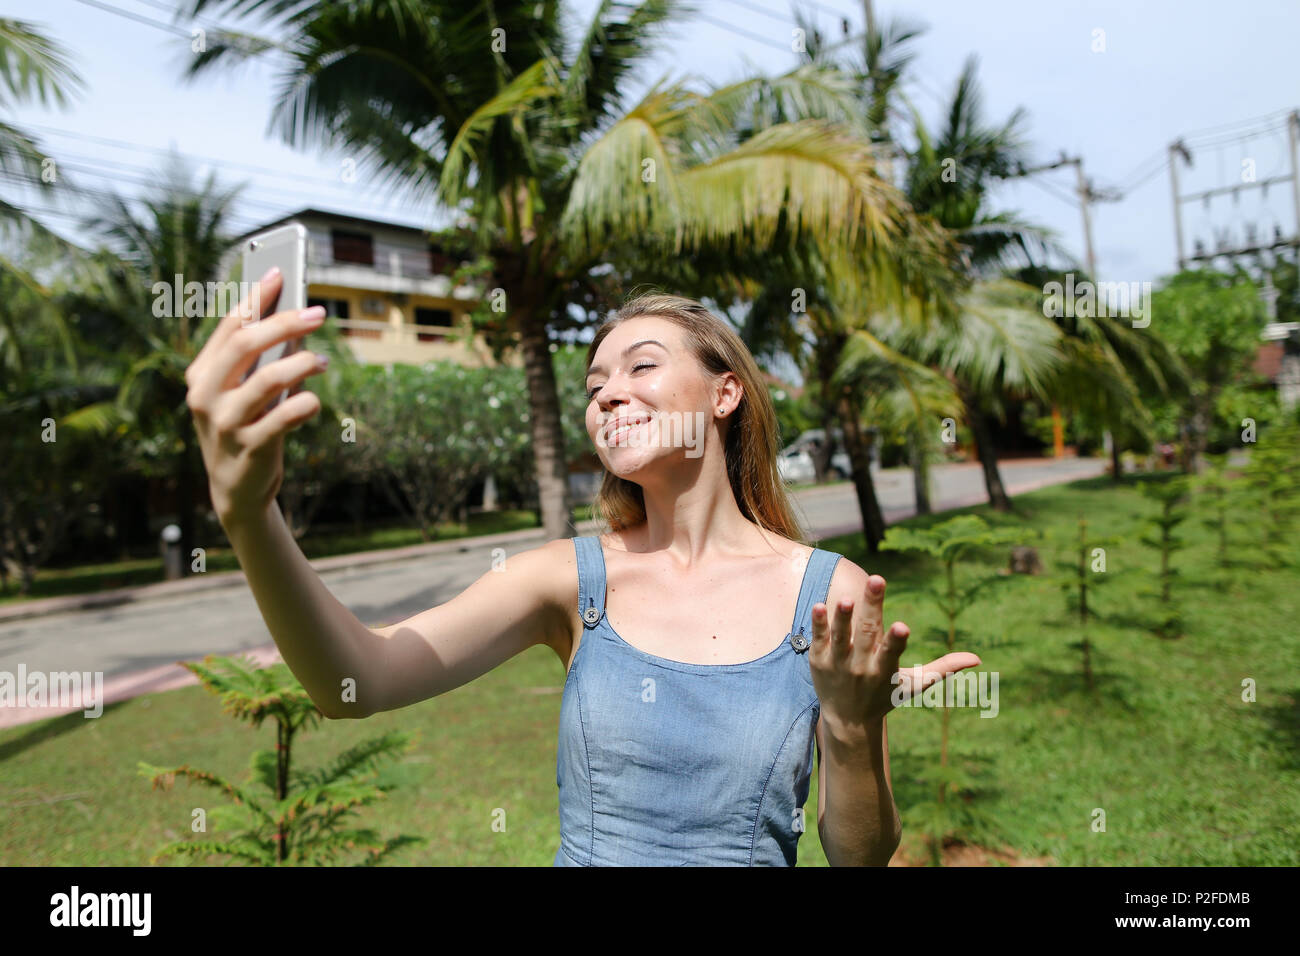 Young pretty girl making selfie by smarthone near palm trees in background. Stock Photo